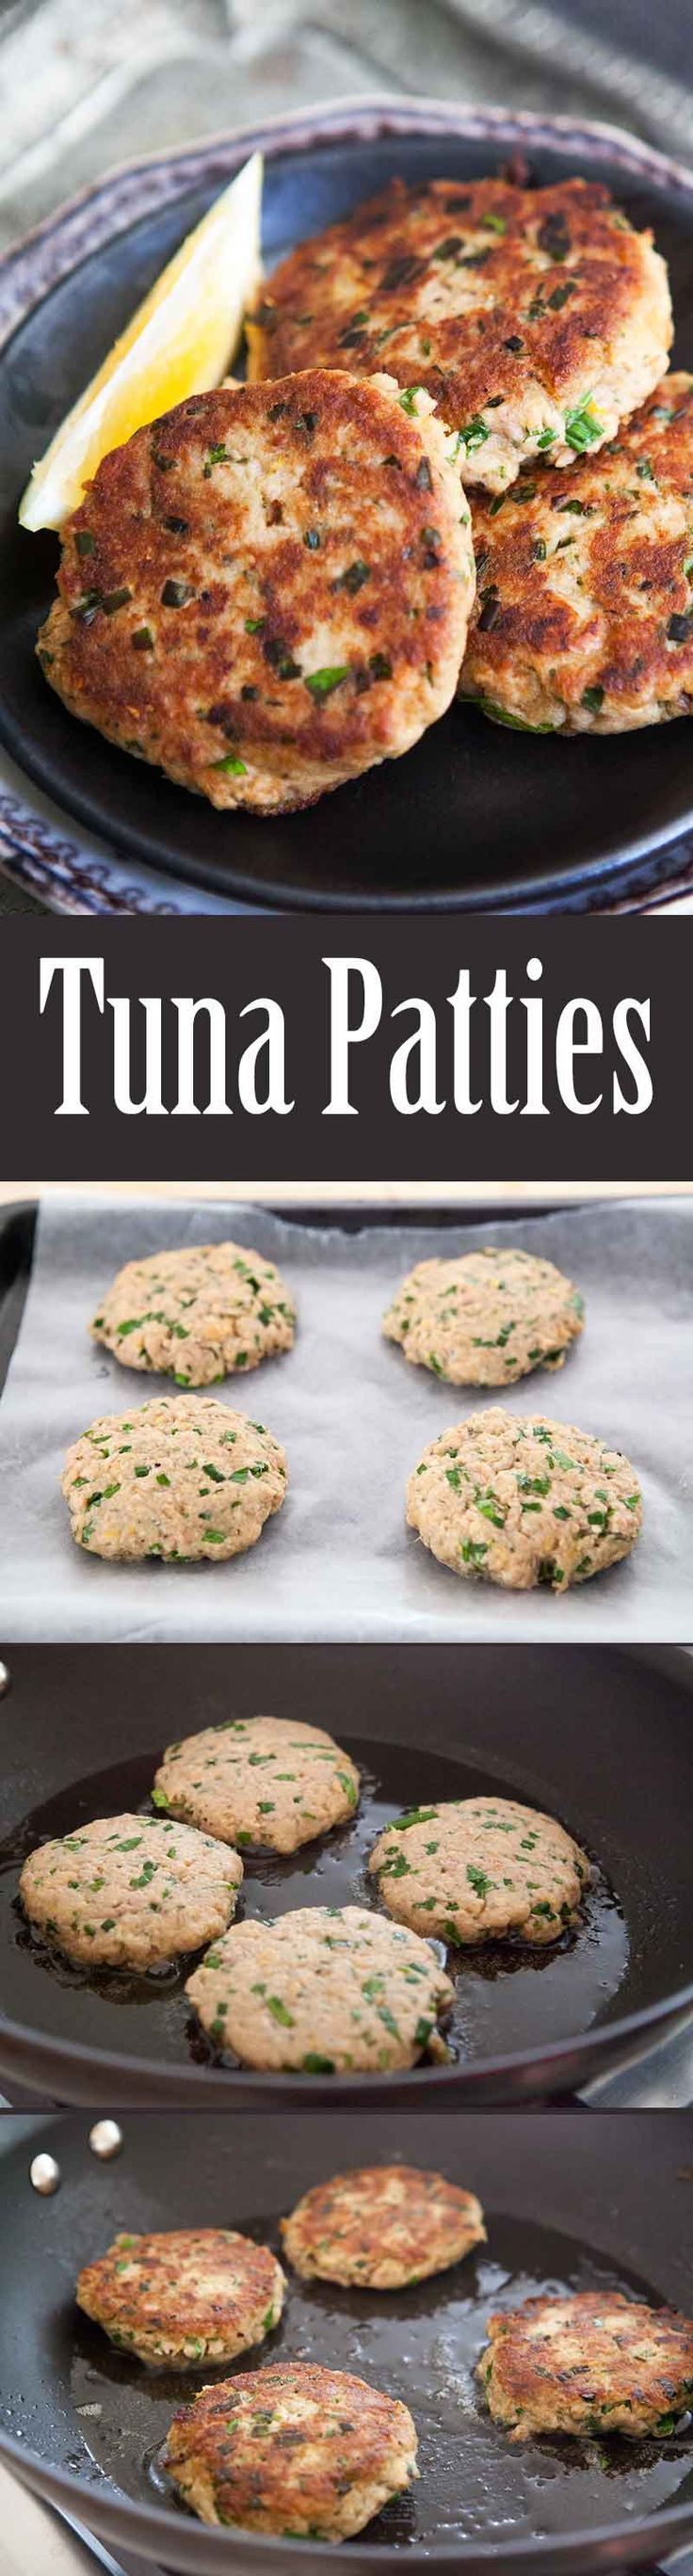 "Quick EASY healthy Tuna Patties! Easy to make, and easy on the budget. Best thing you can make with canned tuna. Your kids will LOVE them. On <a href=""http://www.simplyrecipes.com"" rel=""nofollow"" target=""_blank"">www.simplyrecipes.com</a>"